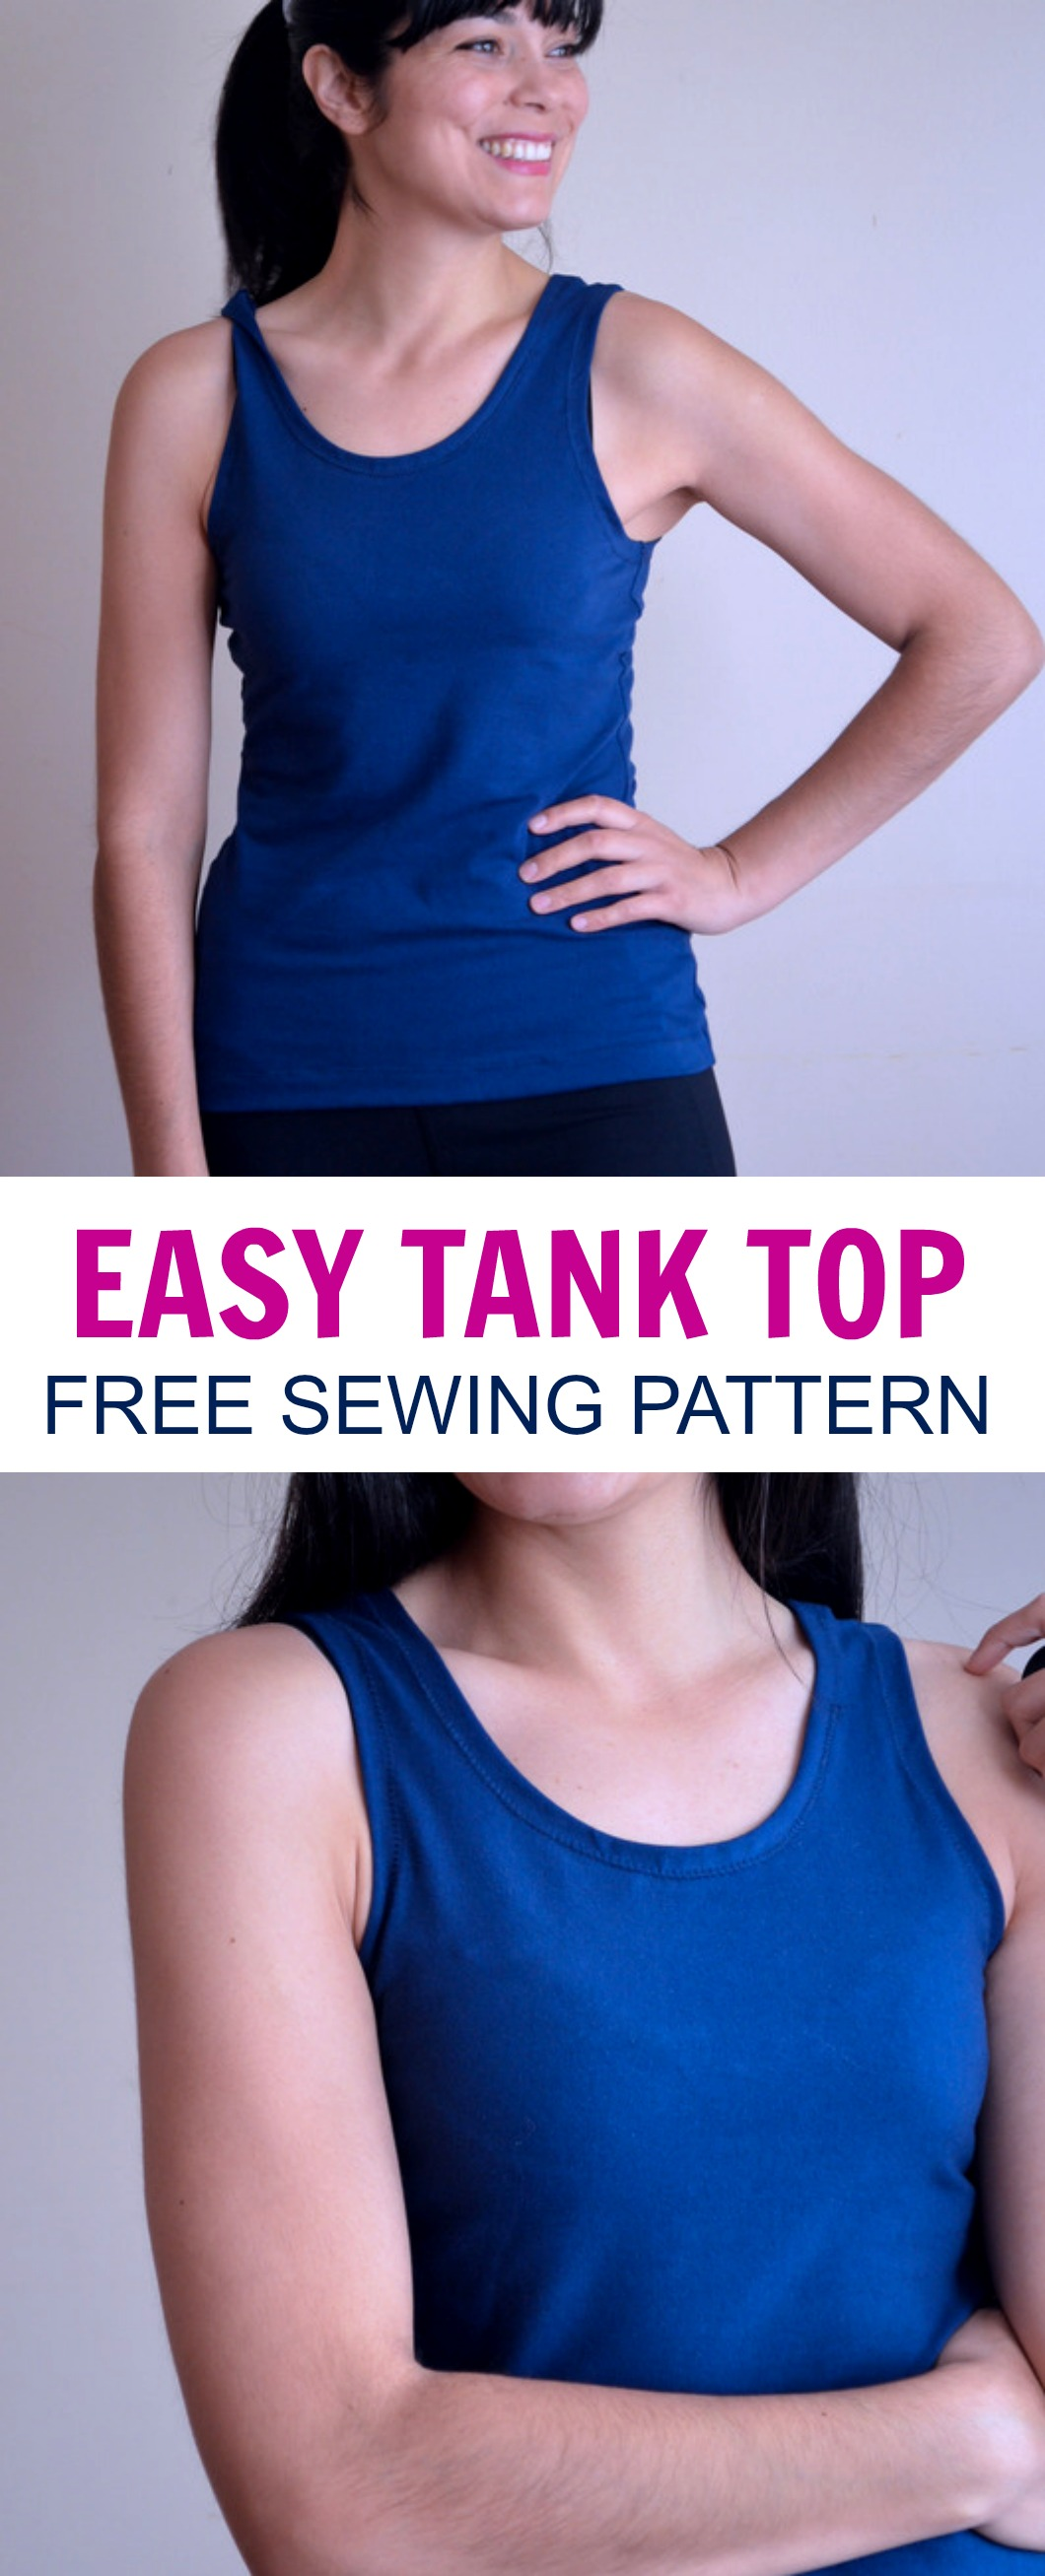 Easy tank top pattern on the cutting floor printable pdf sewing easy tank top pattern jeuxipadfo Gallery